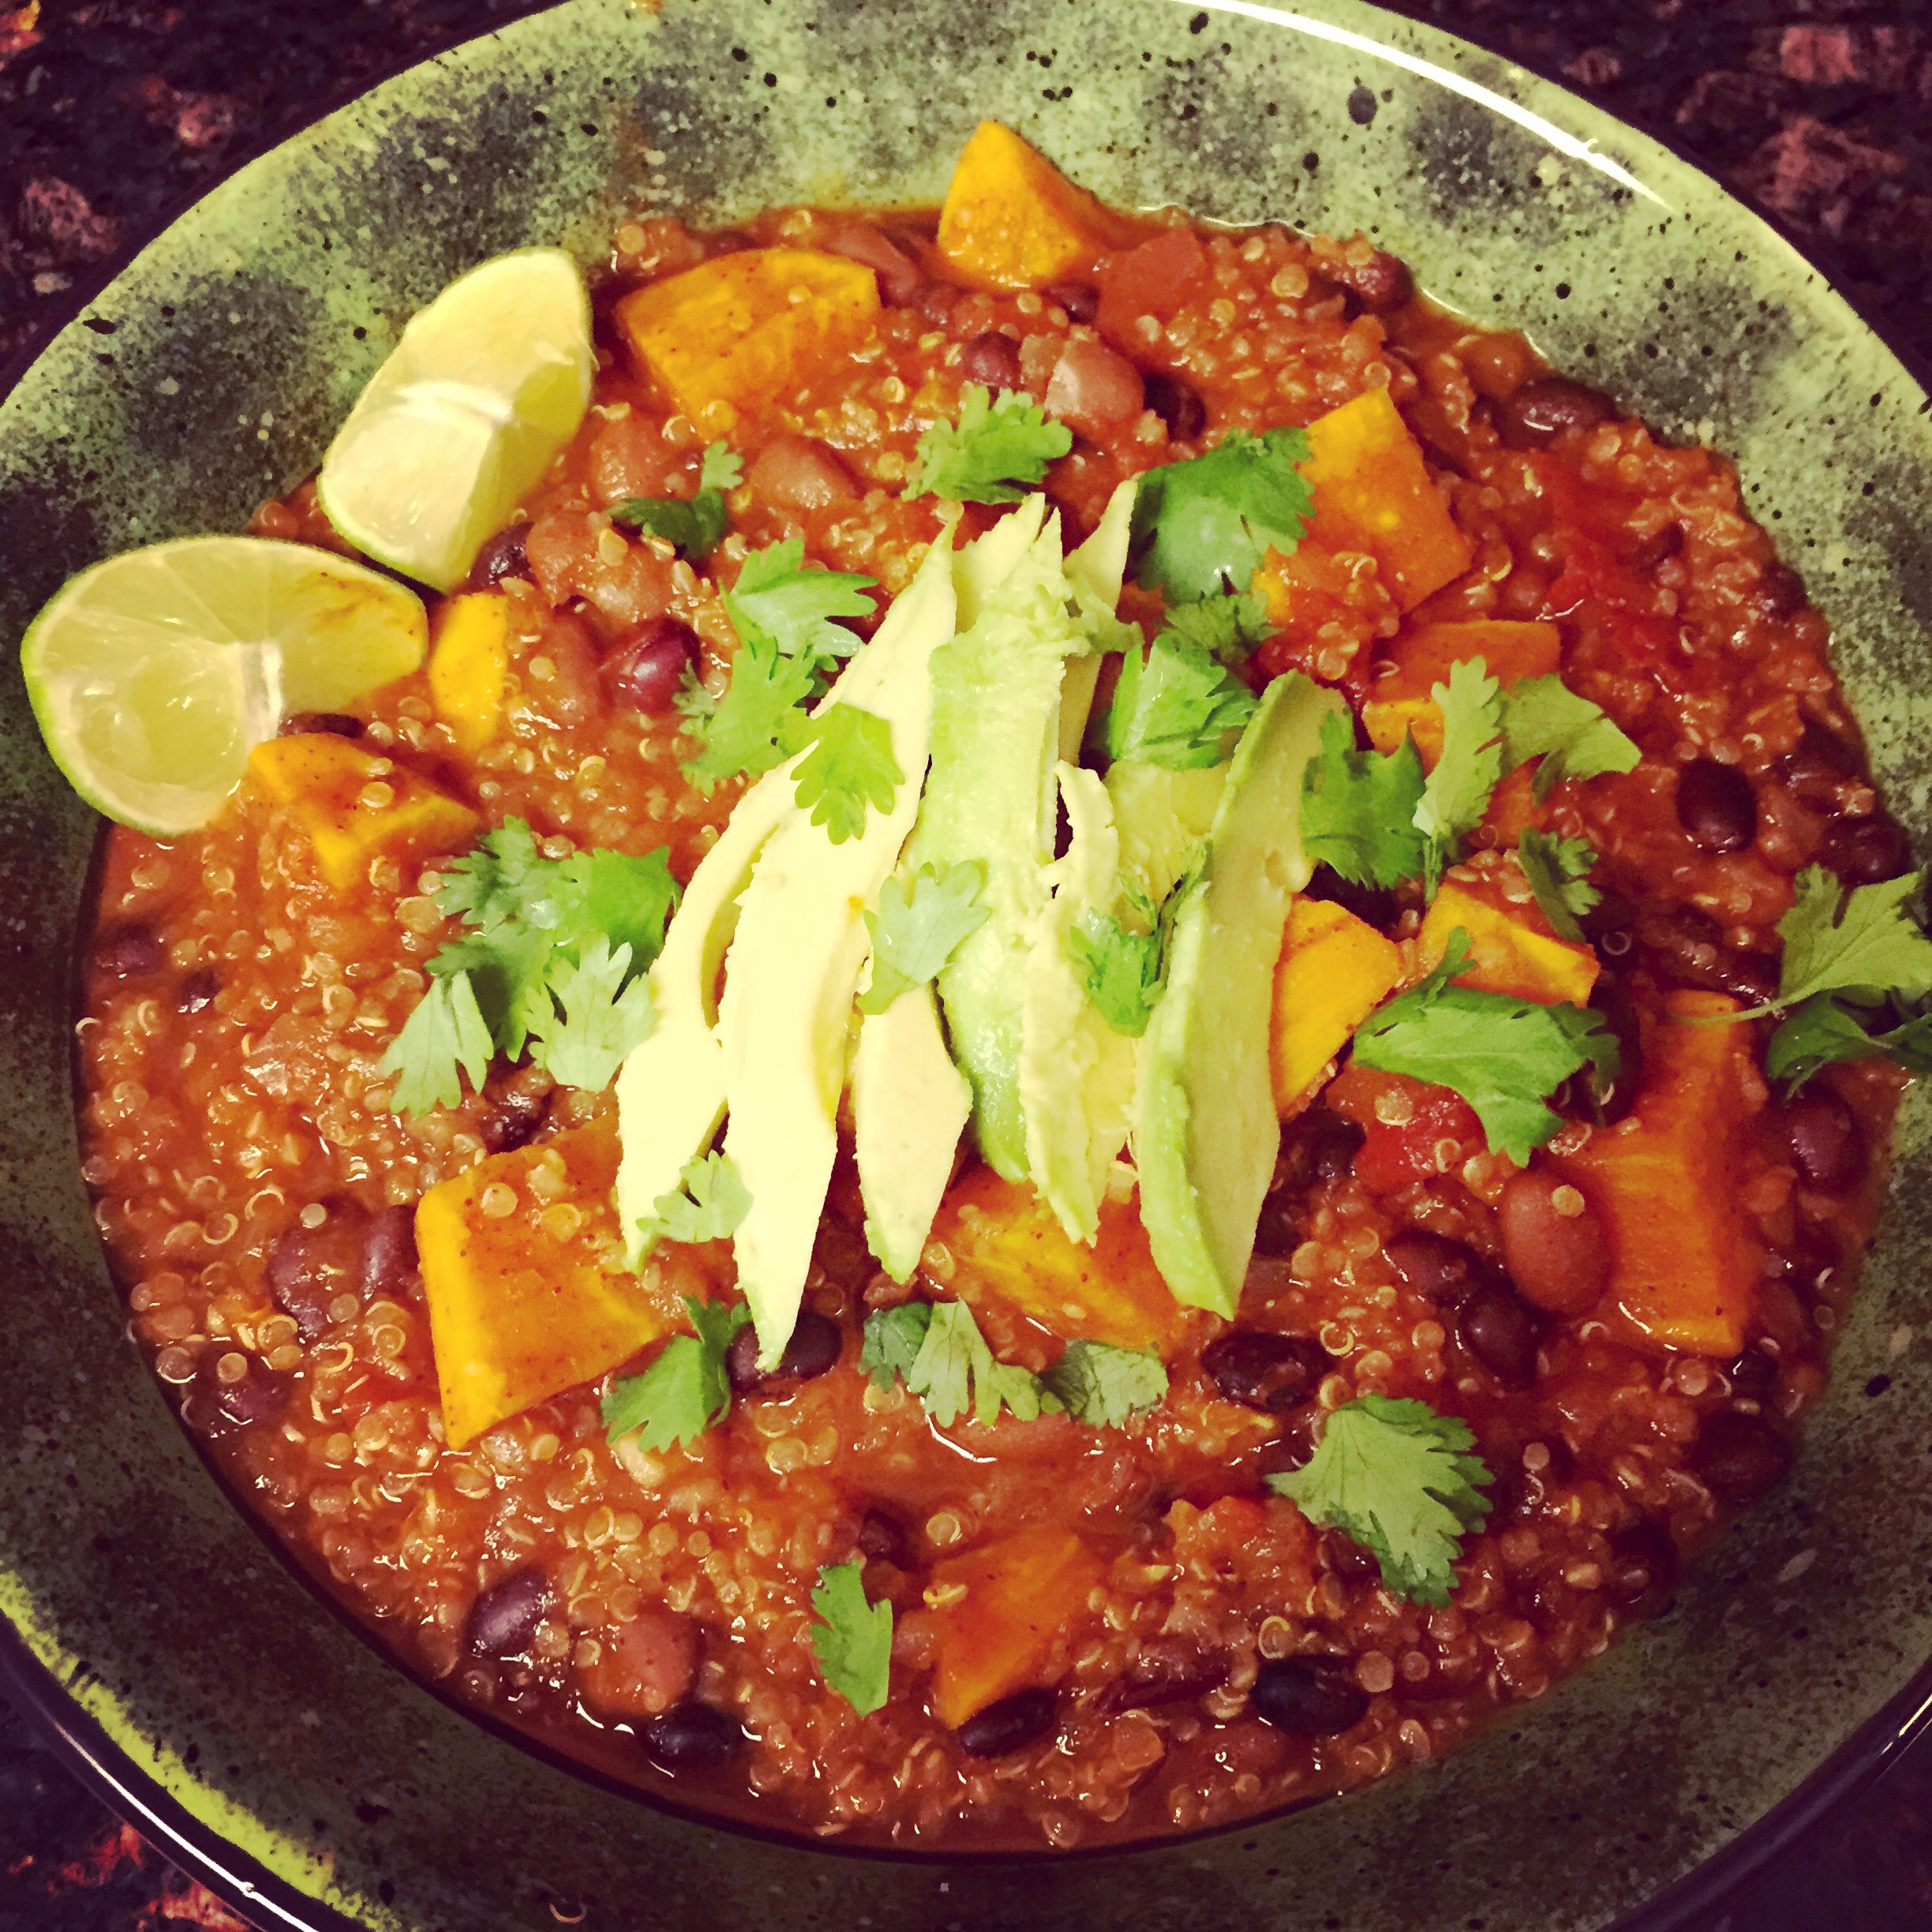 Vegetarian Sweet Potato, Bean, and Quinoa Chili